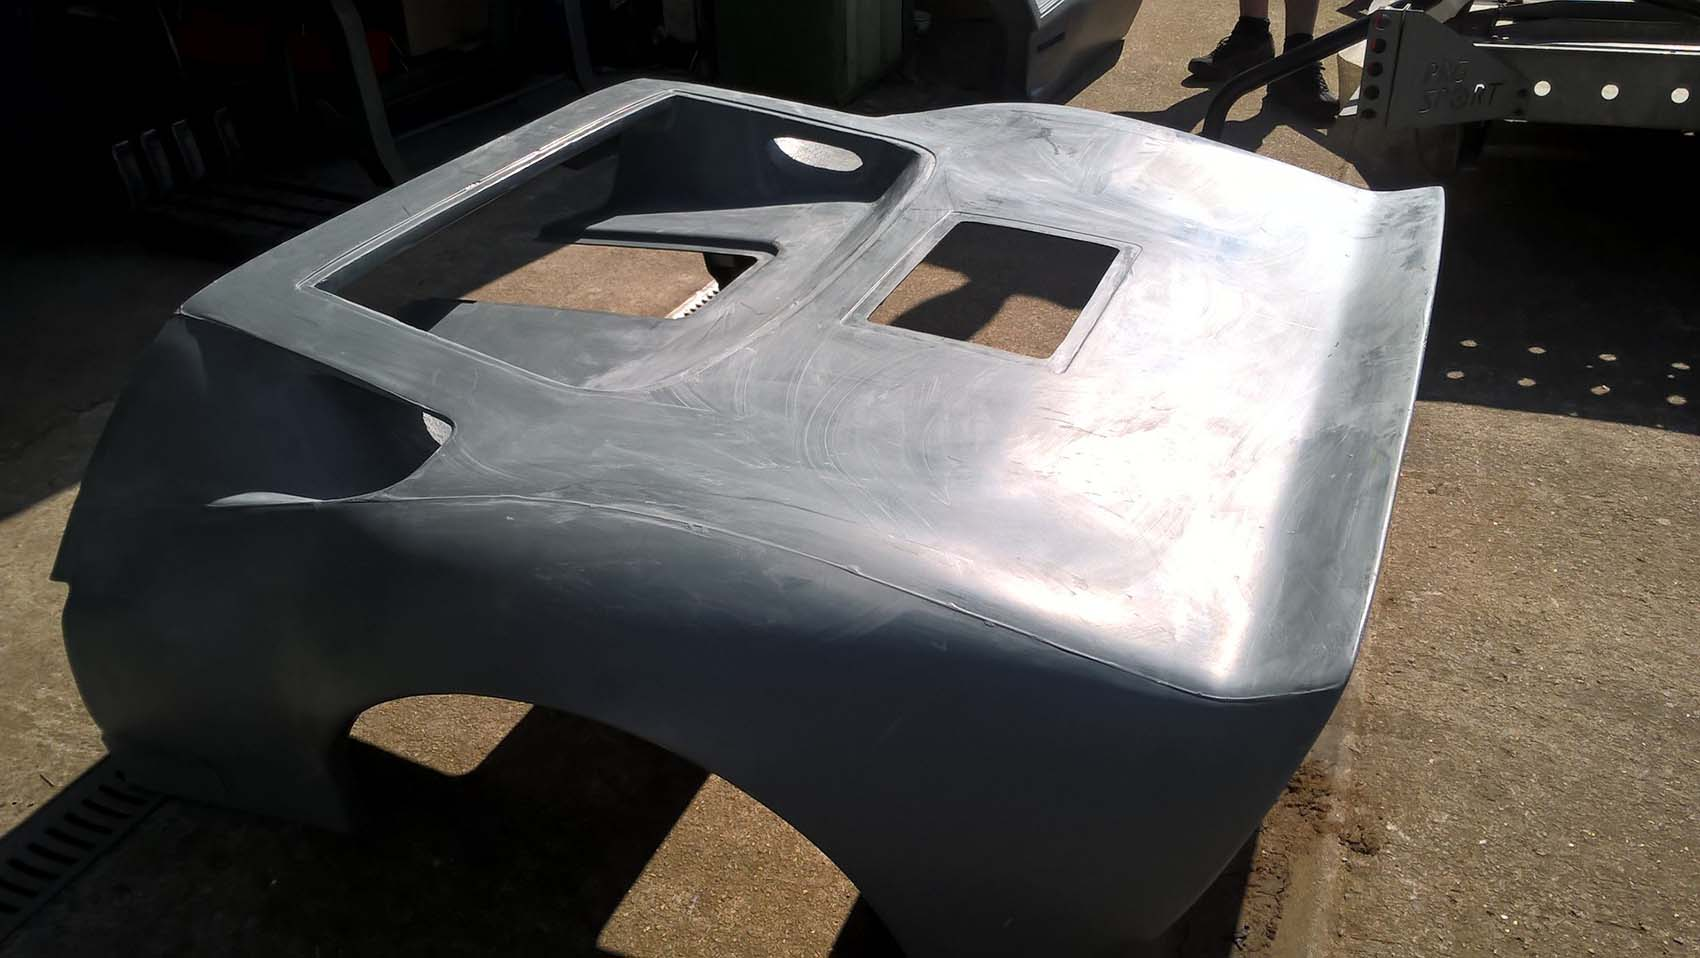 GT40 rear body panel in grey Gel coat (dull finish ready for preparation for paint)